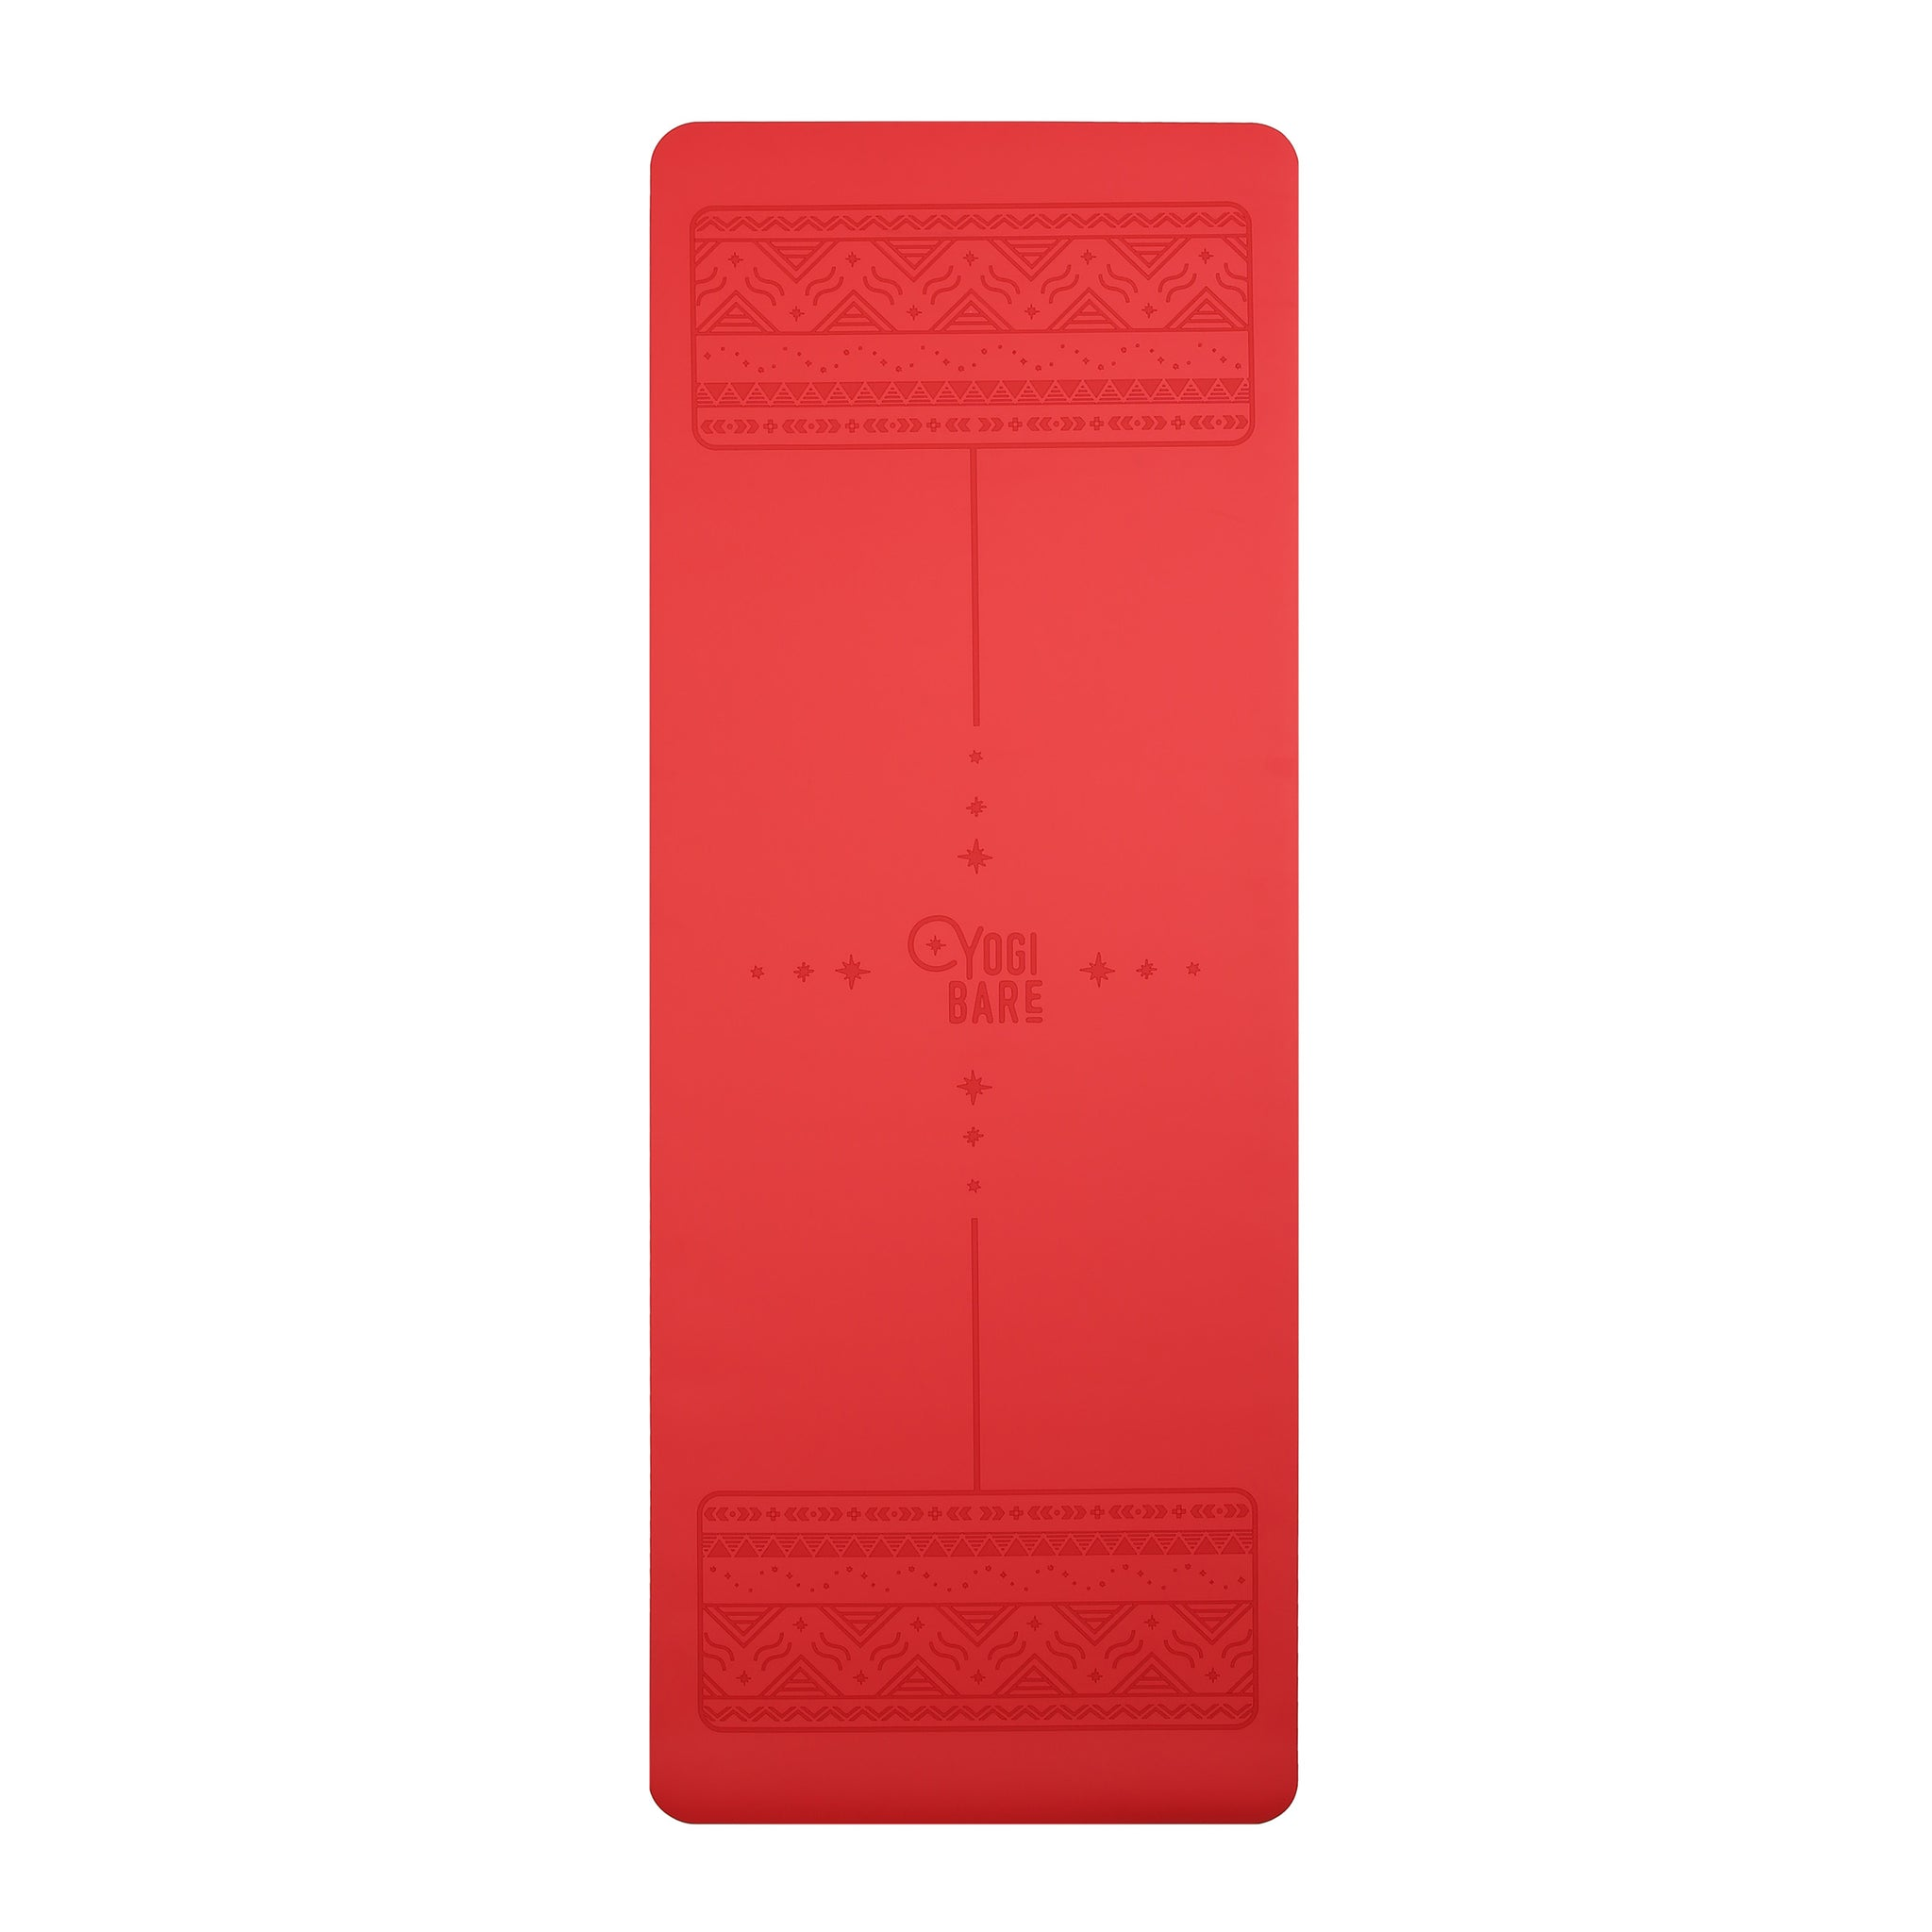 Paws - Natural rubber extreme grip yoga mat - Red